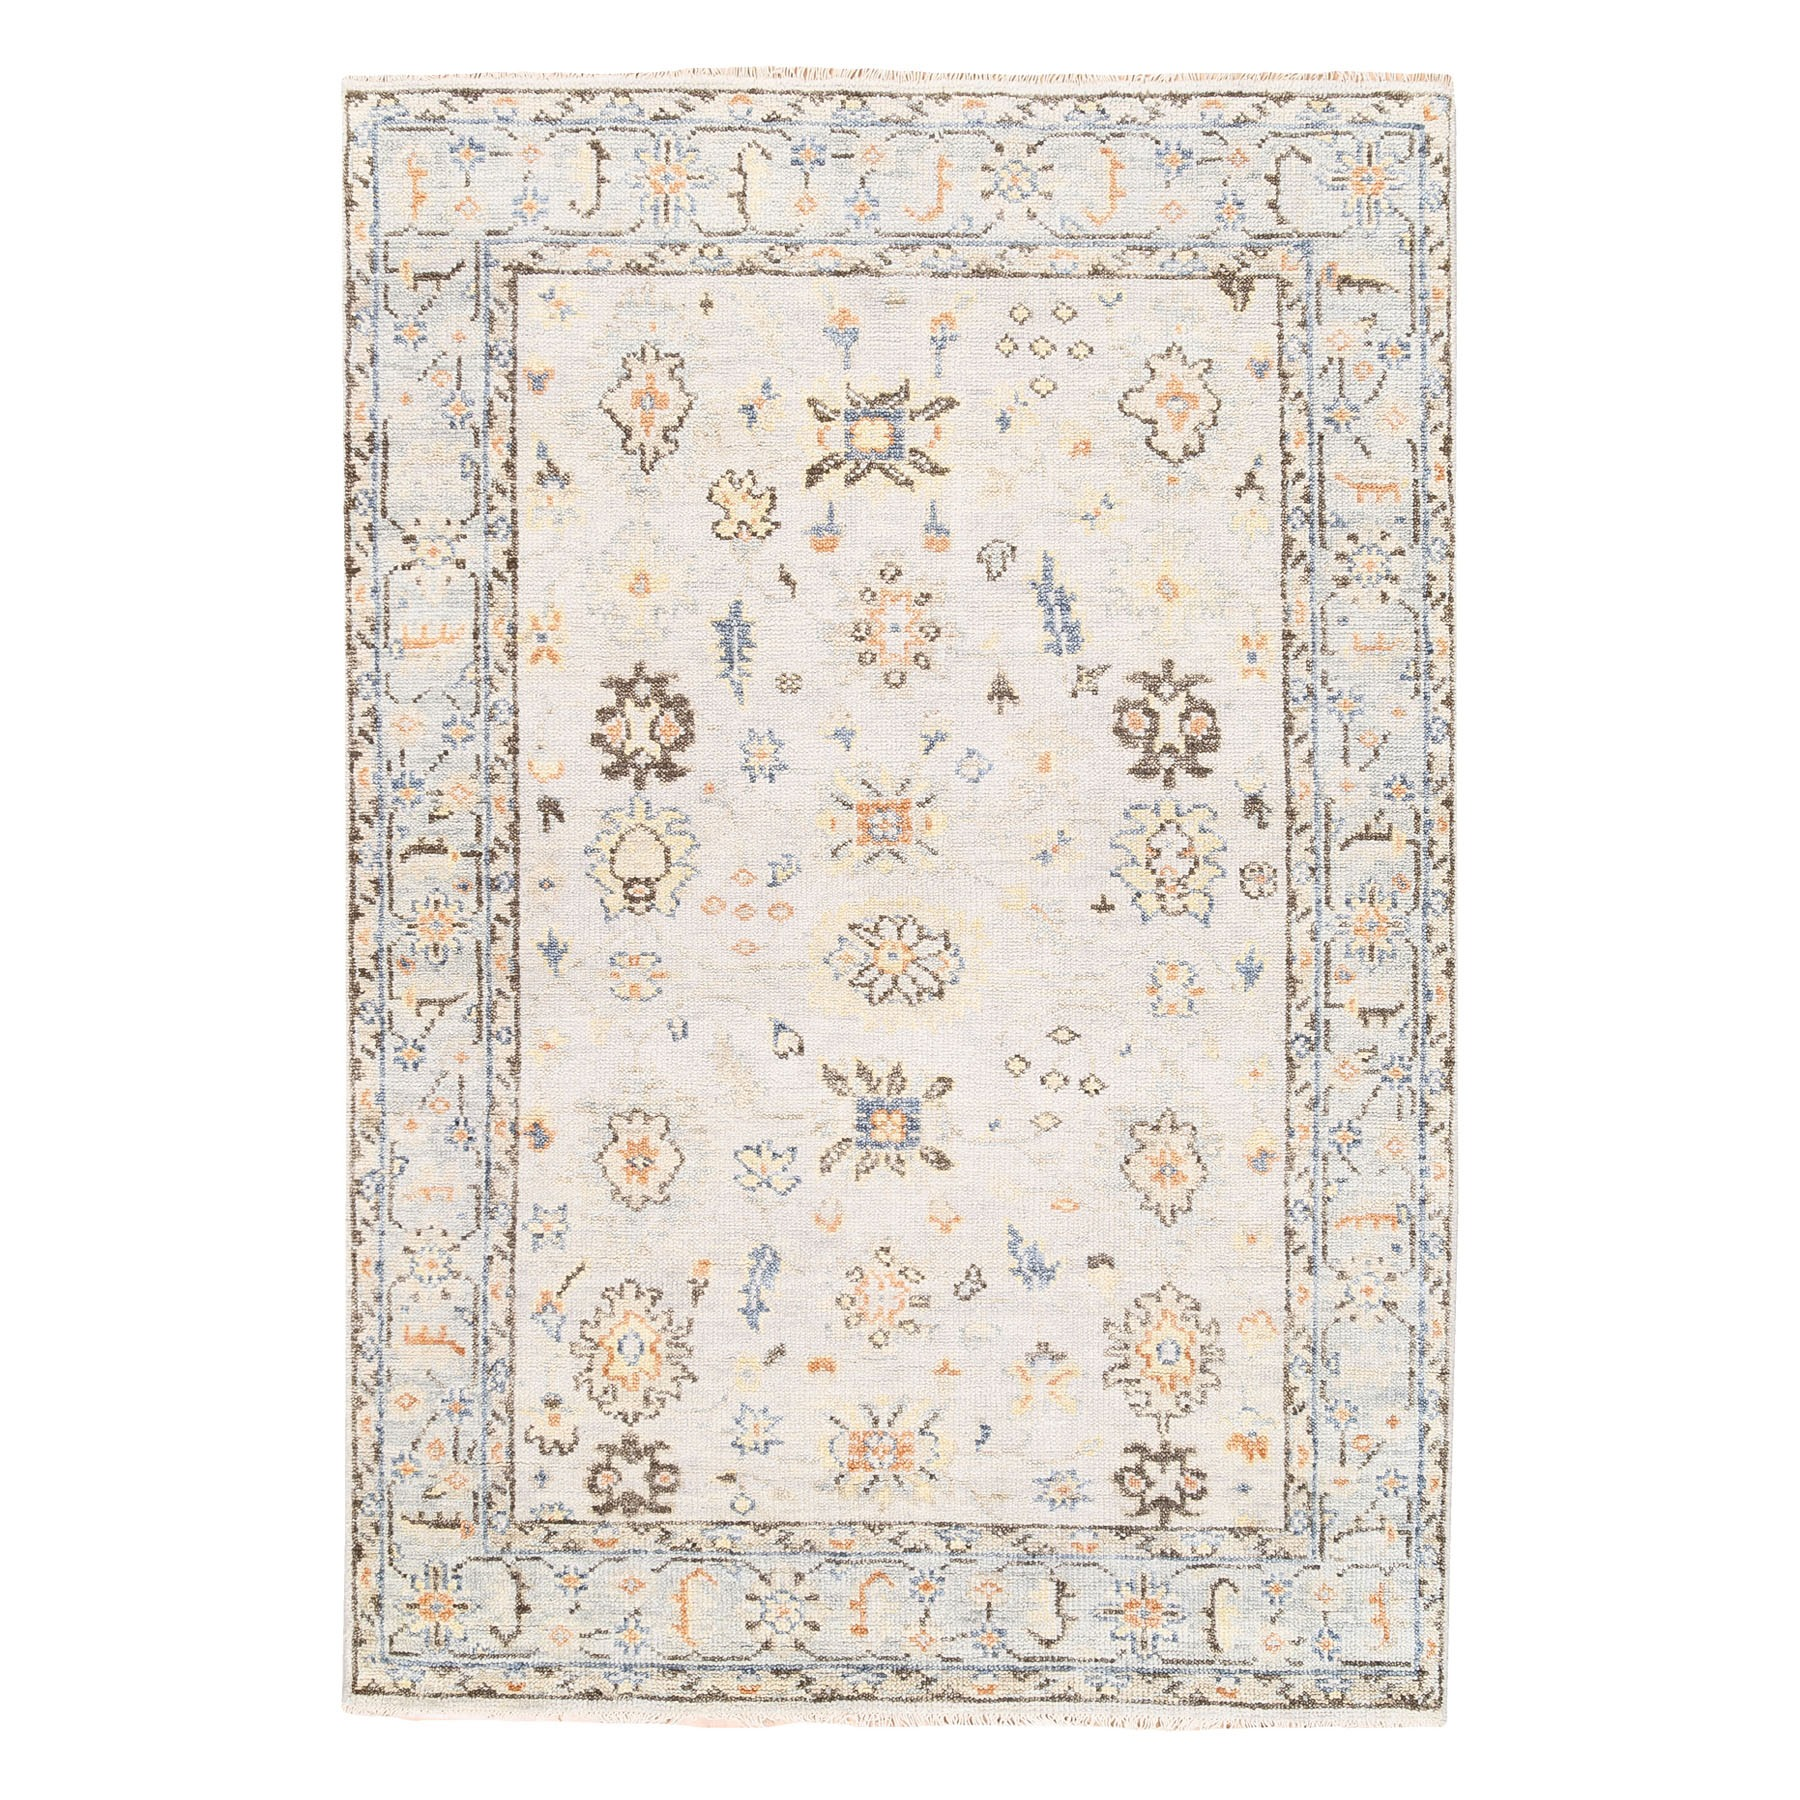 6'x9' Ivory Natural Wool Supple Collection Oushak Design Hand Knotted Oriental Rug